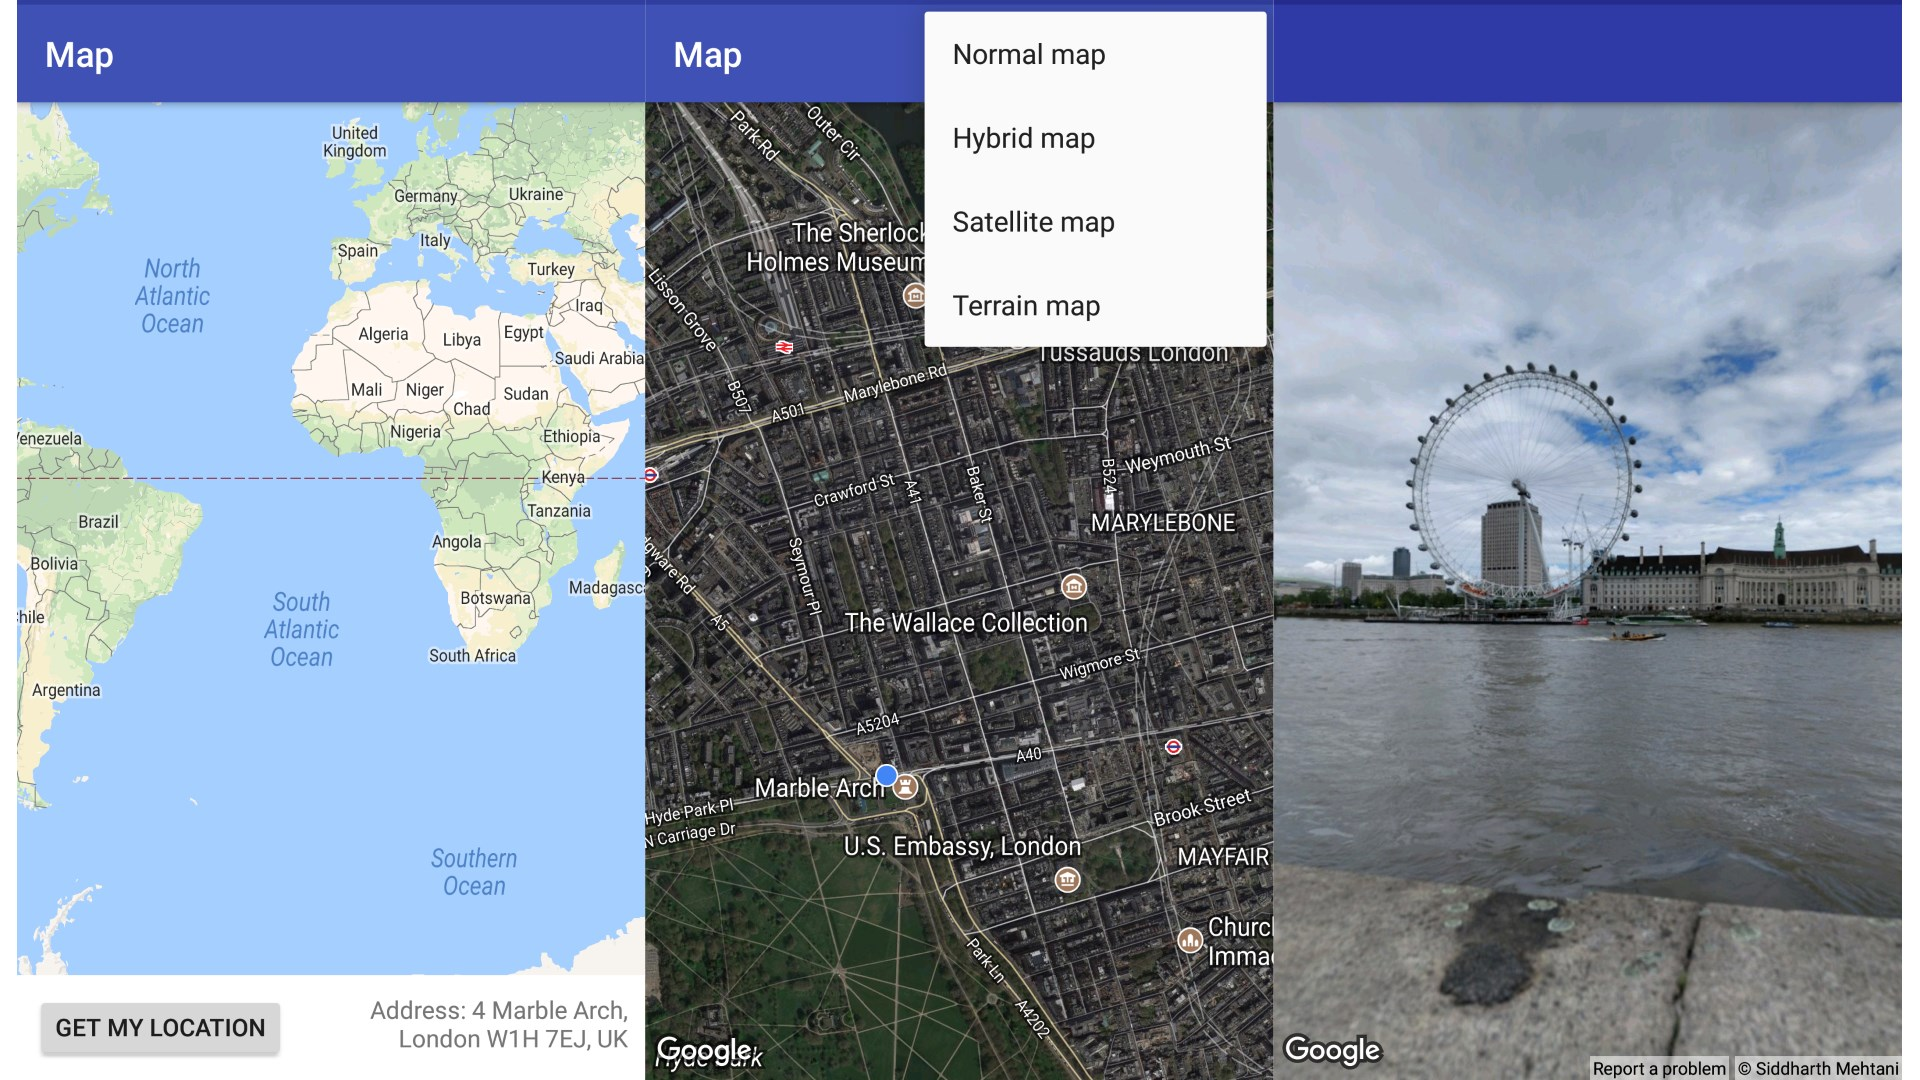 Using Street View and Geocoding in your Android app   Android Authority Today  Google Maps is easily one of the world s most popular mapping  services  allowing millions of users to plan their journeys  discover new  places to